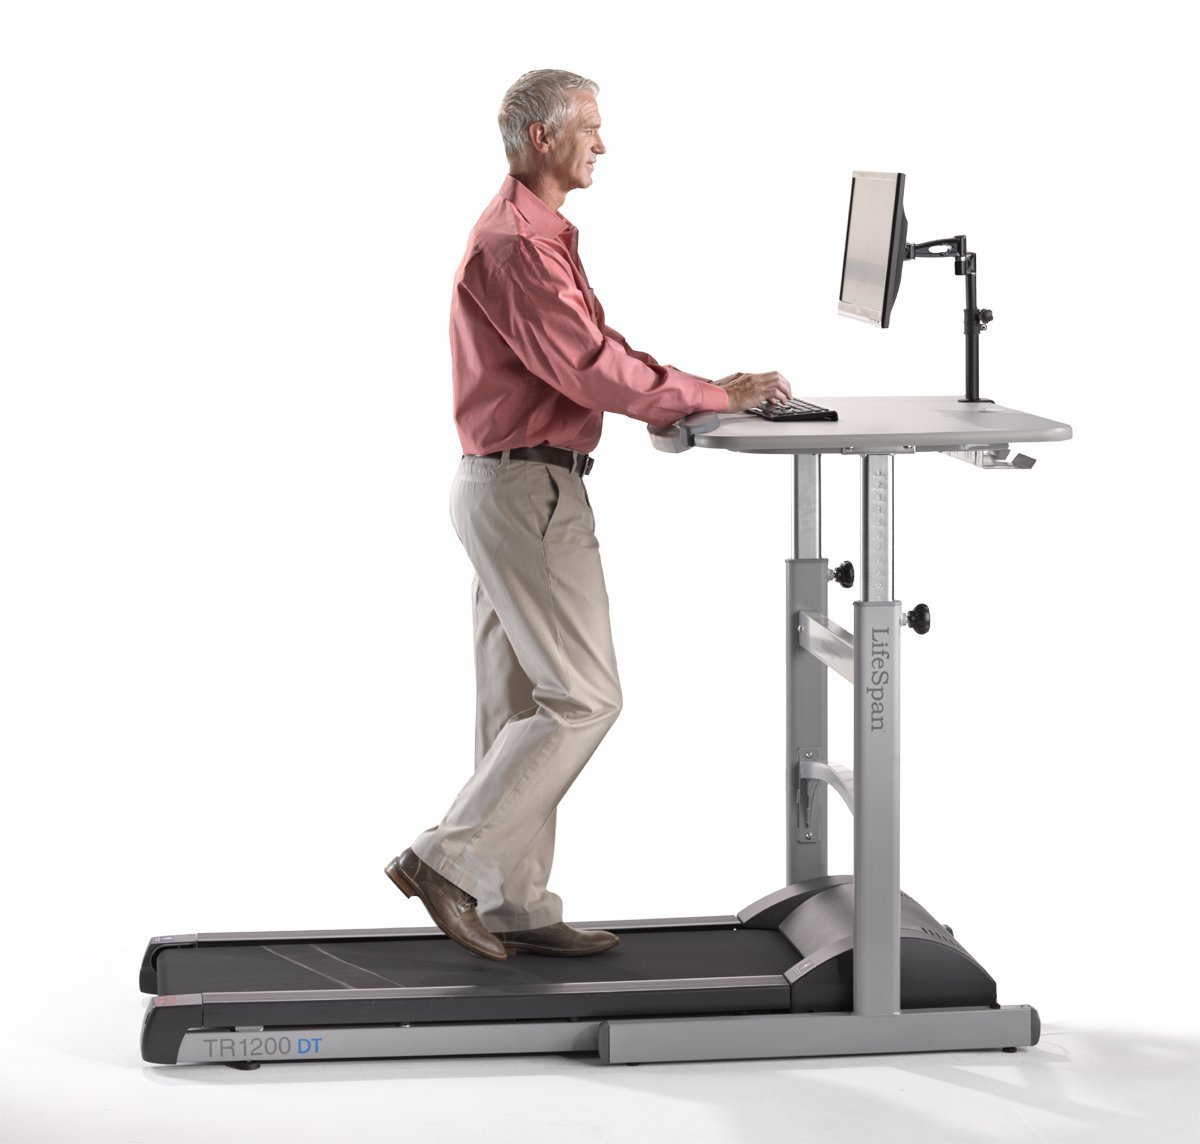 Treadmill Desk Funny: Which Is Best For You?